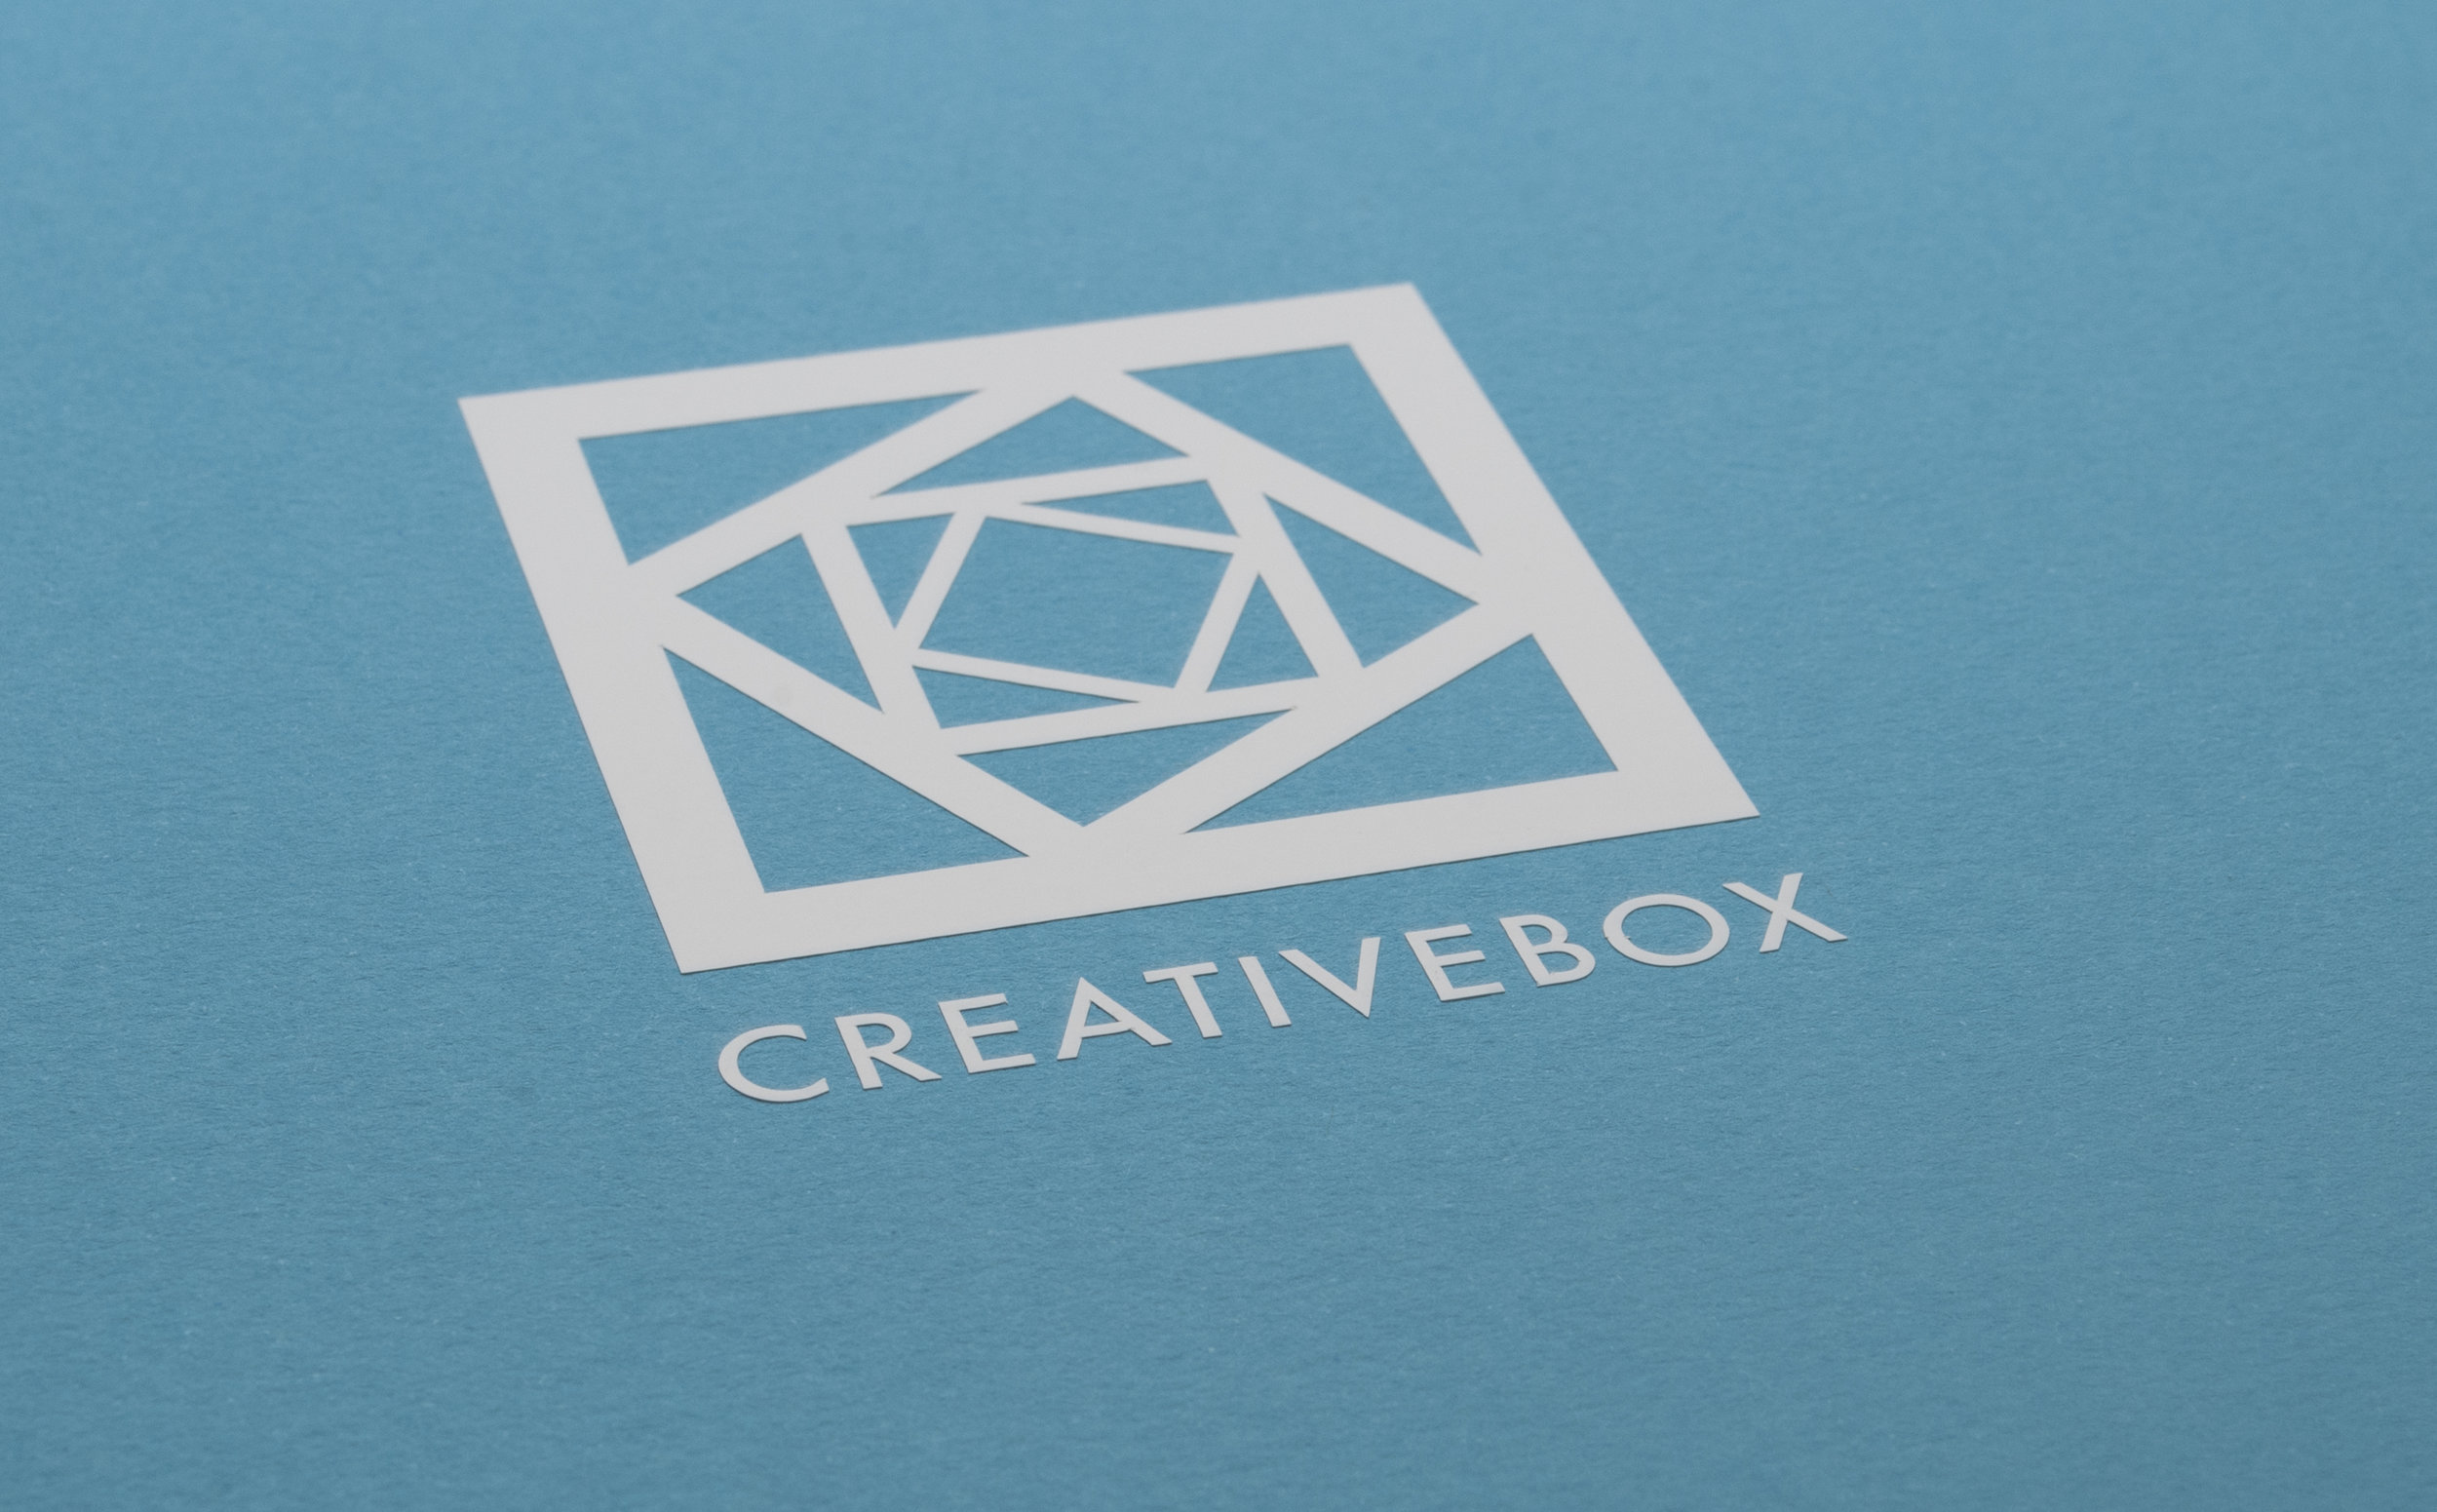 CreativeBox Logo.jpg